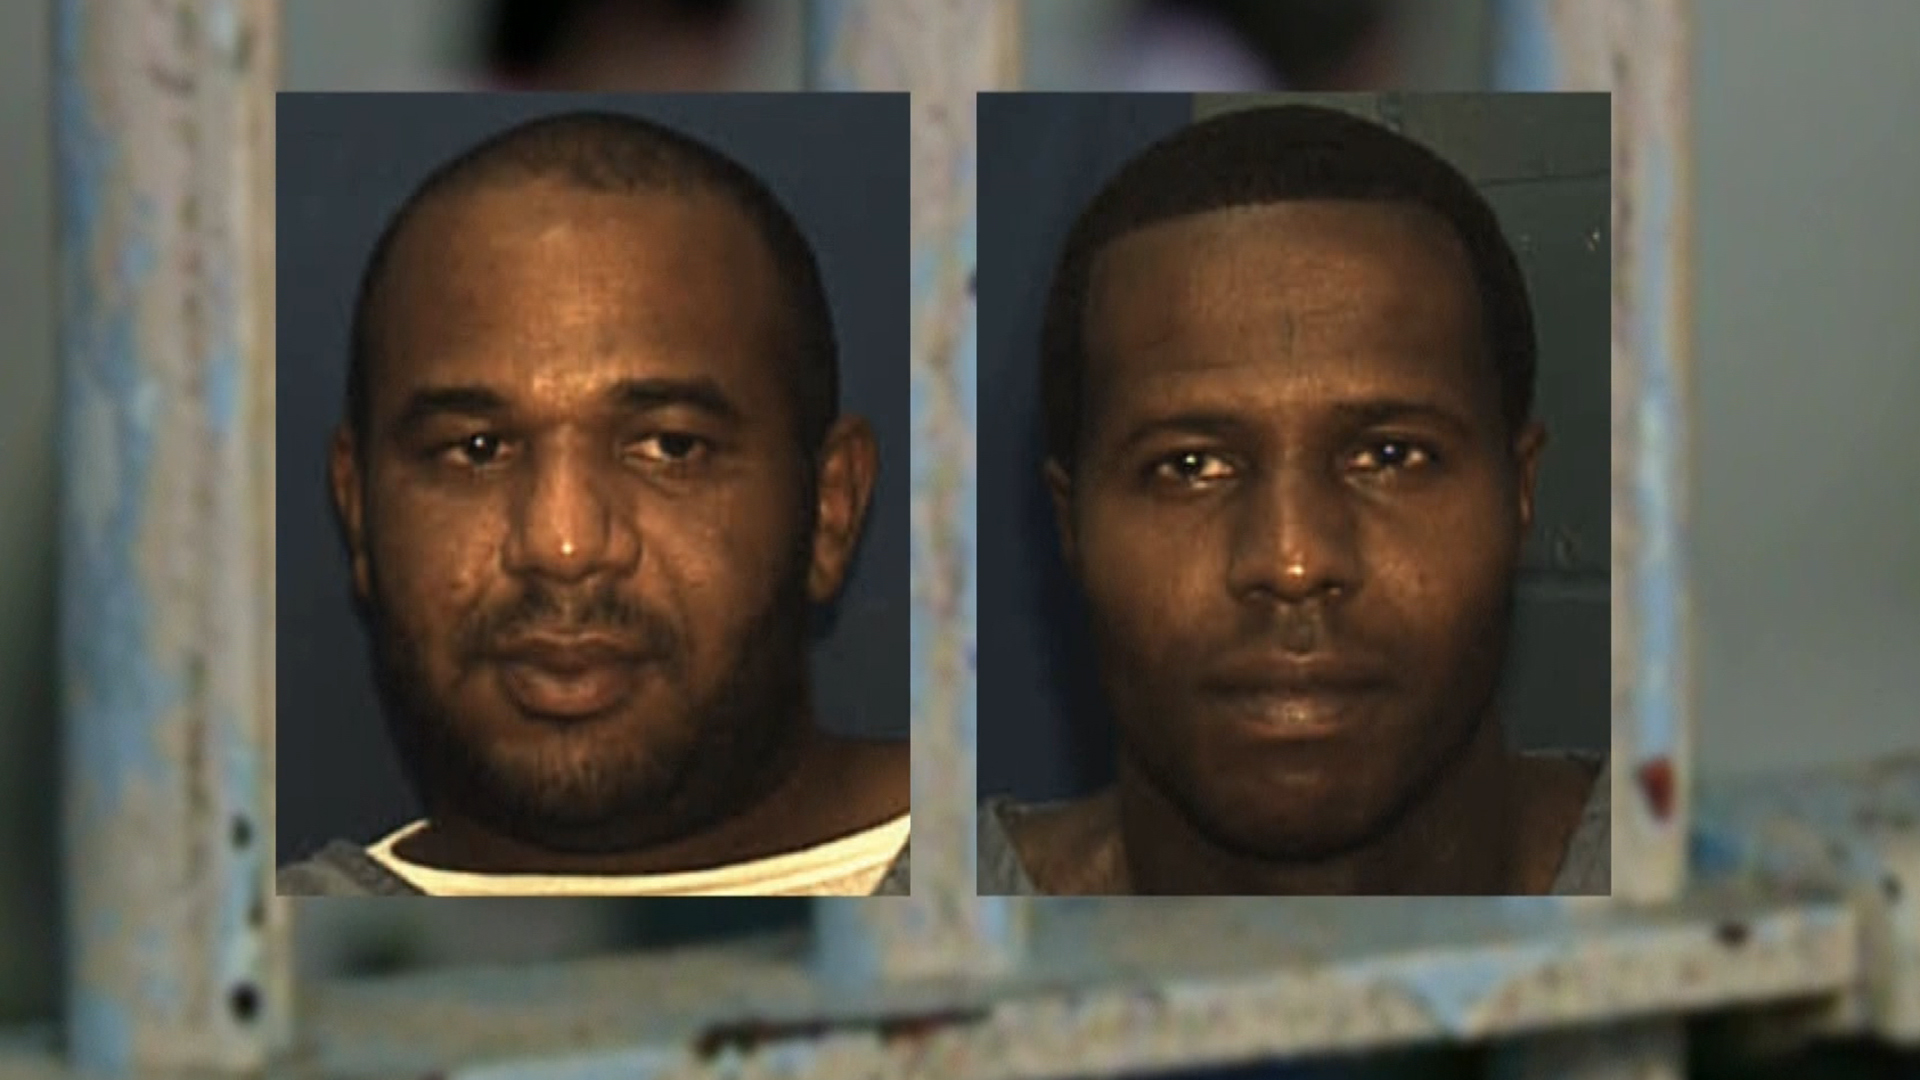 Florida escapee had tried to forge release papers before